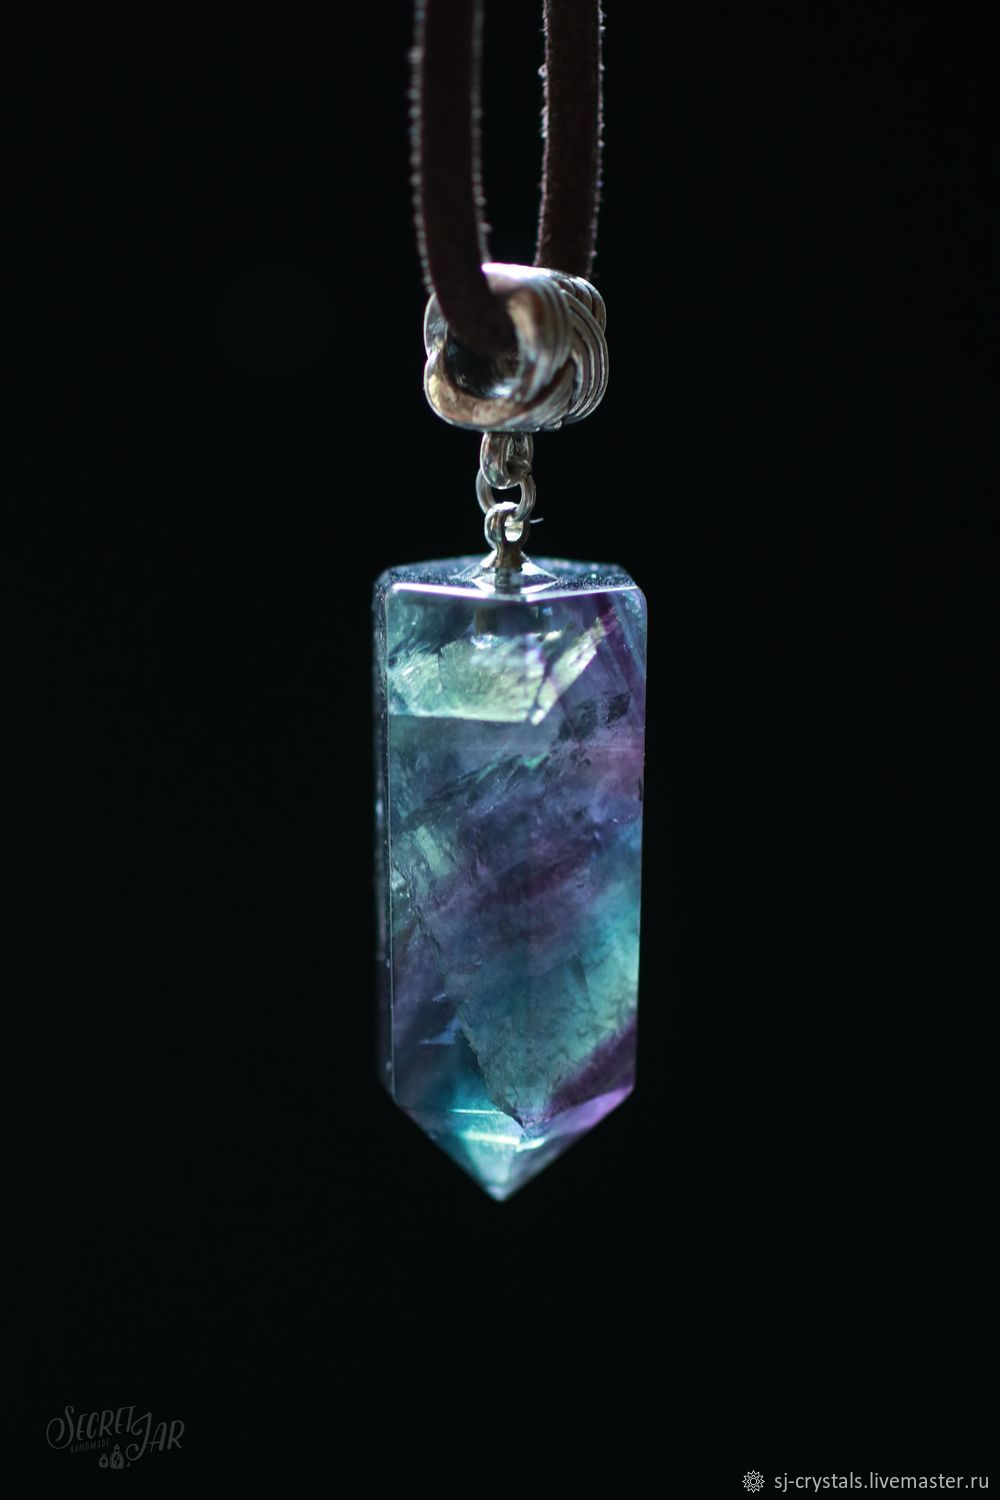 Crystal pendant fluorite pf 114 shop online on livemaster with crystal pendant fluorite pf 114 secret jar crystals my livemaster aloadofball Images